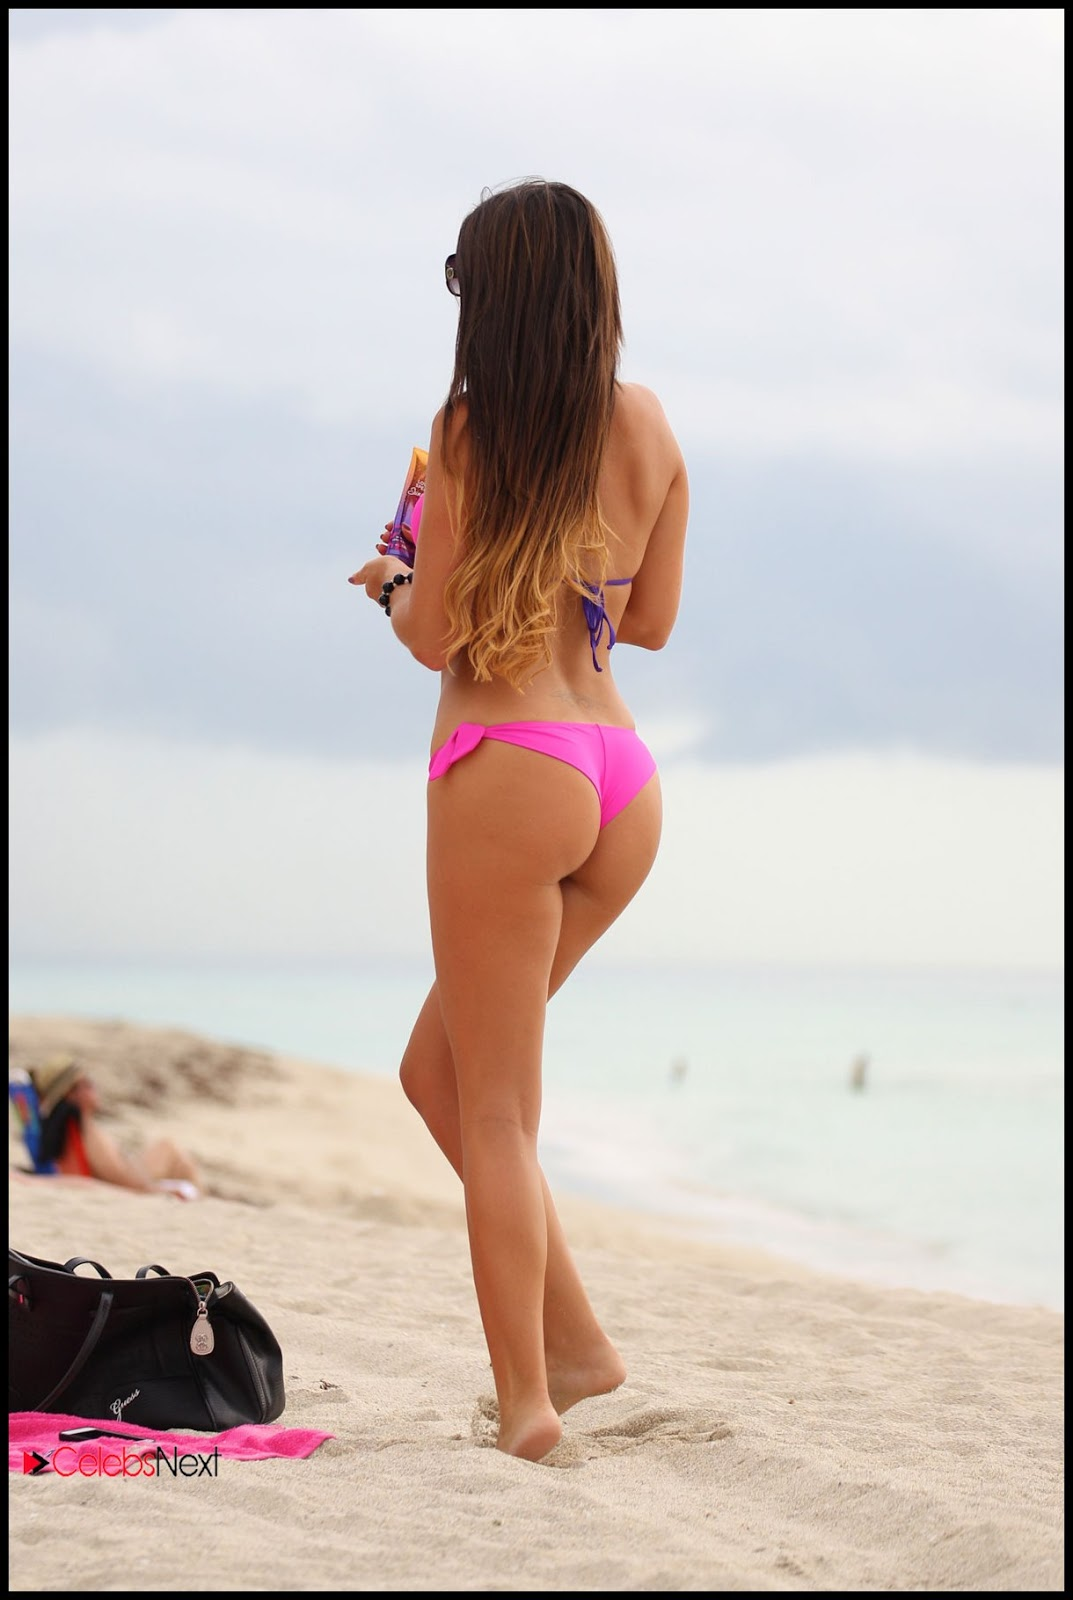 Claudia Romani Bikini Pictures at a Beach in Miami ~ Celebs Next